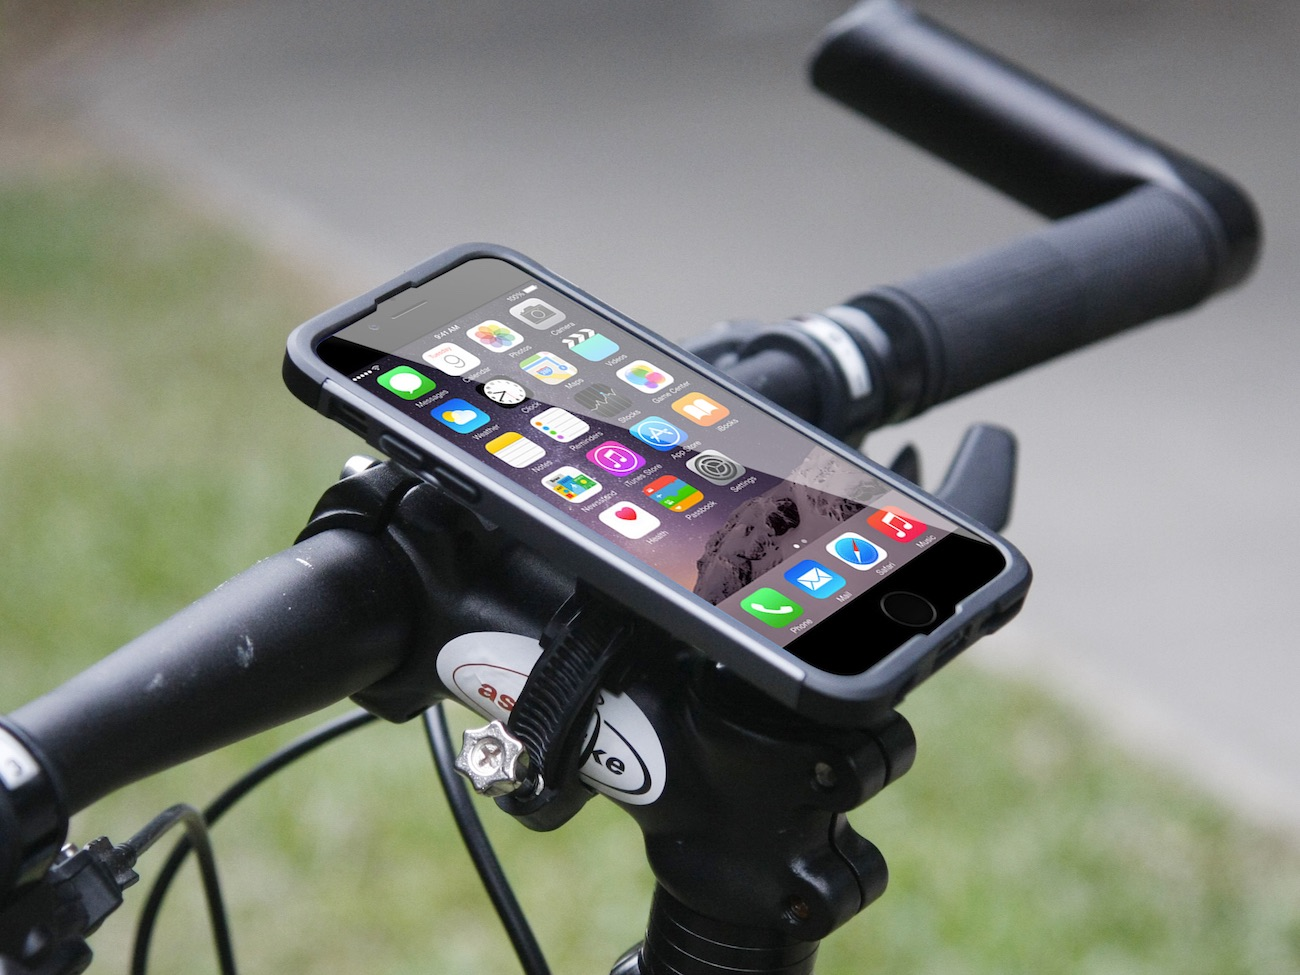 Armor-X iPhone 6 Mount Case for jogging, Car & Bike